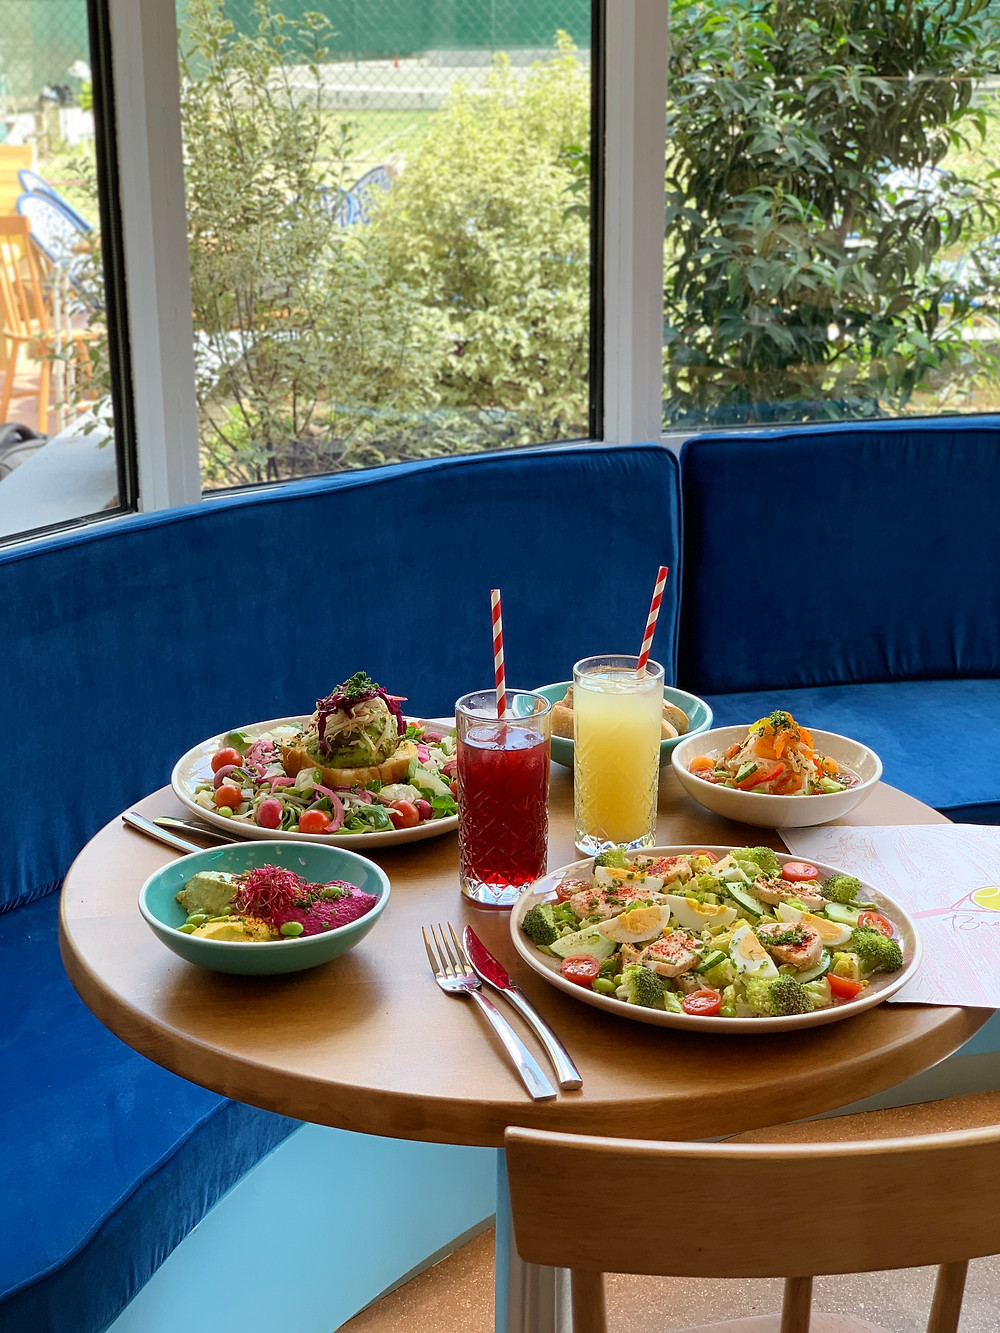 Break Paris 17eme _ Healthy Restaurant Brunch Paris Oubruncher Paris Avocado Toast Paris - Dejeuner à paris _ Newtable - Tripadvisor Paris _ 75017